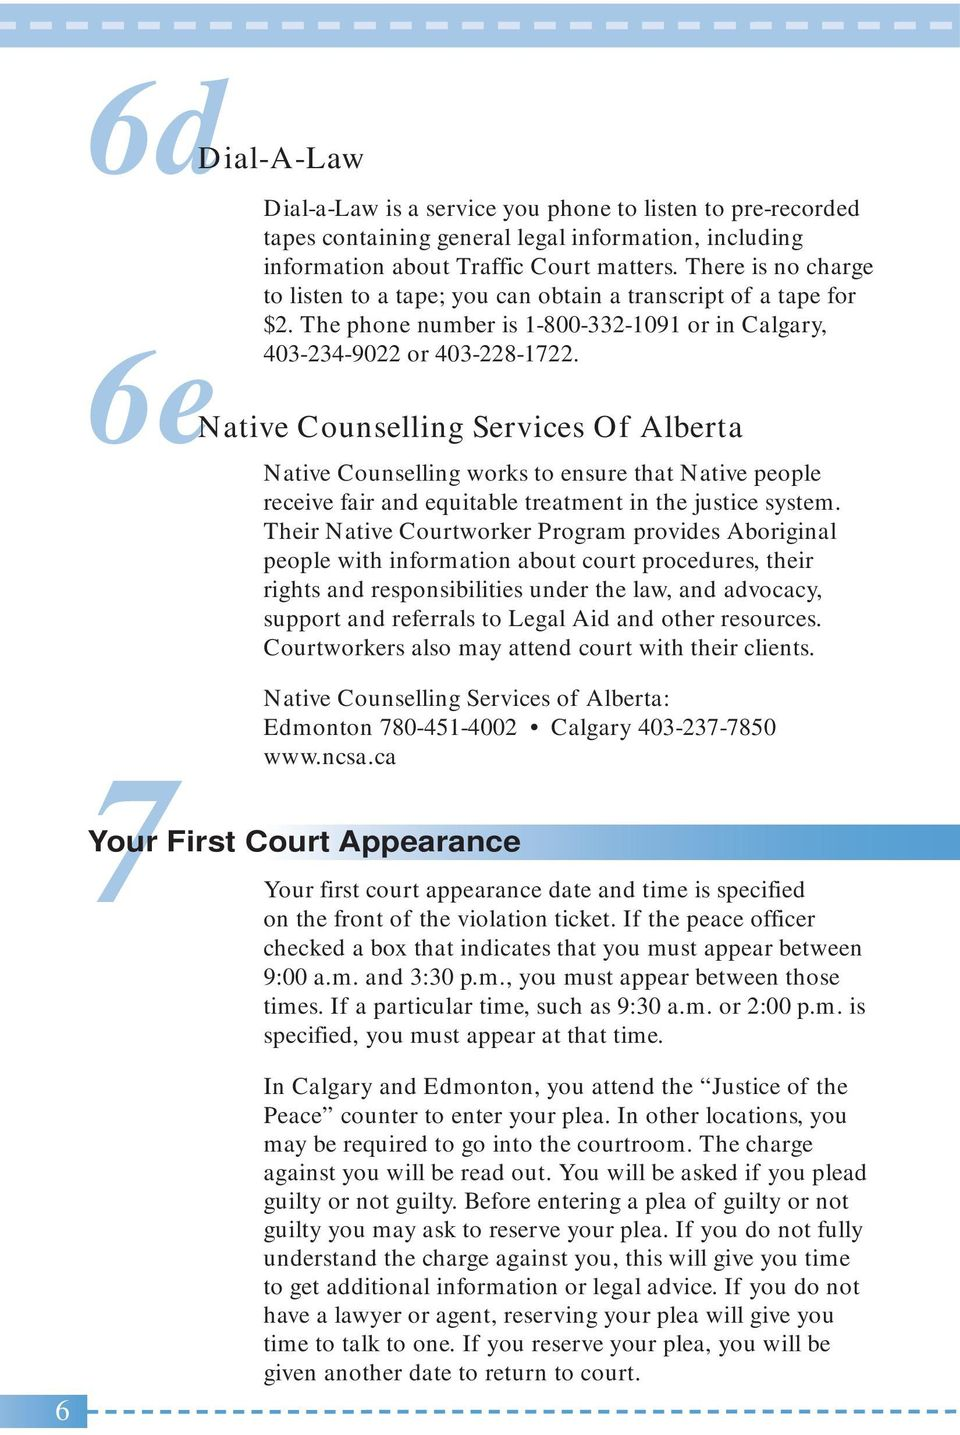 6e Native Counselling Services Of Alberta Native Counselling works to ensure that Native people receive fair and equitable treatment in the justice system.